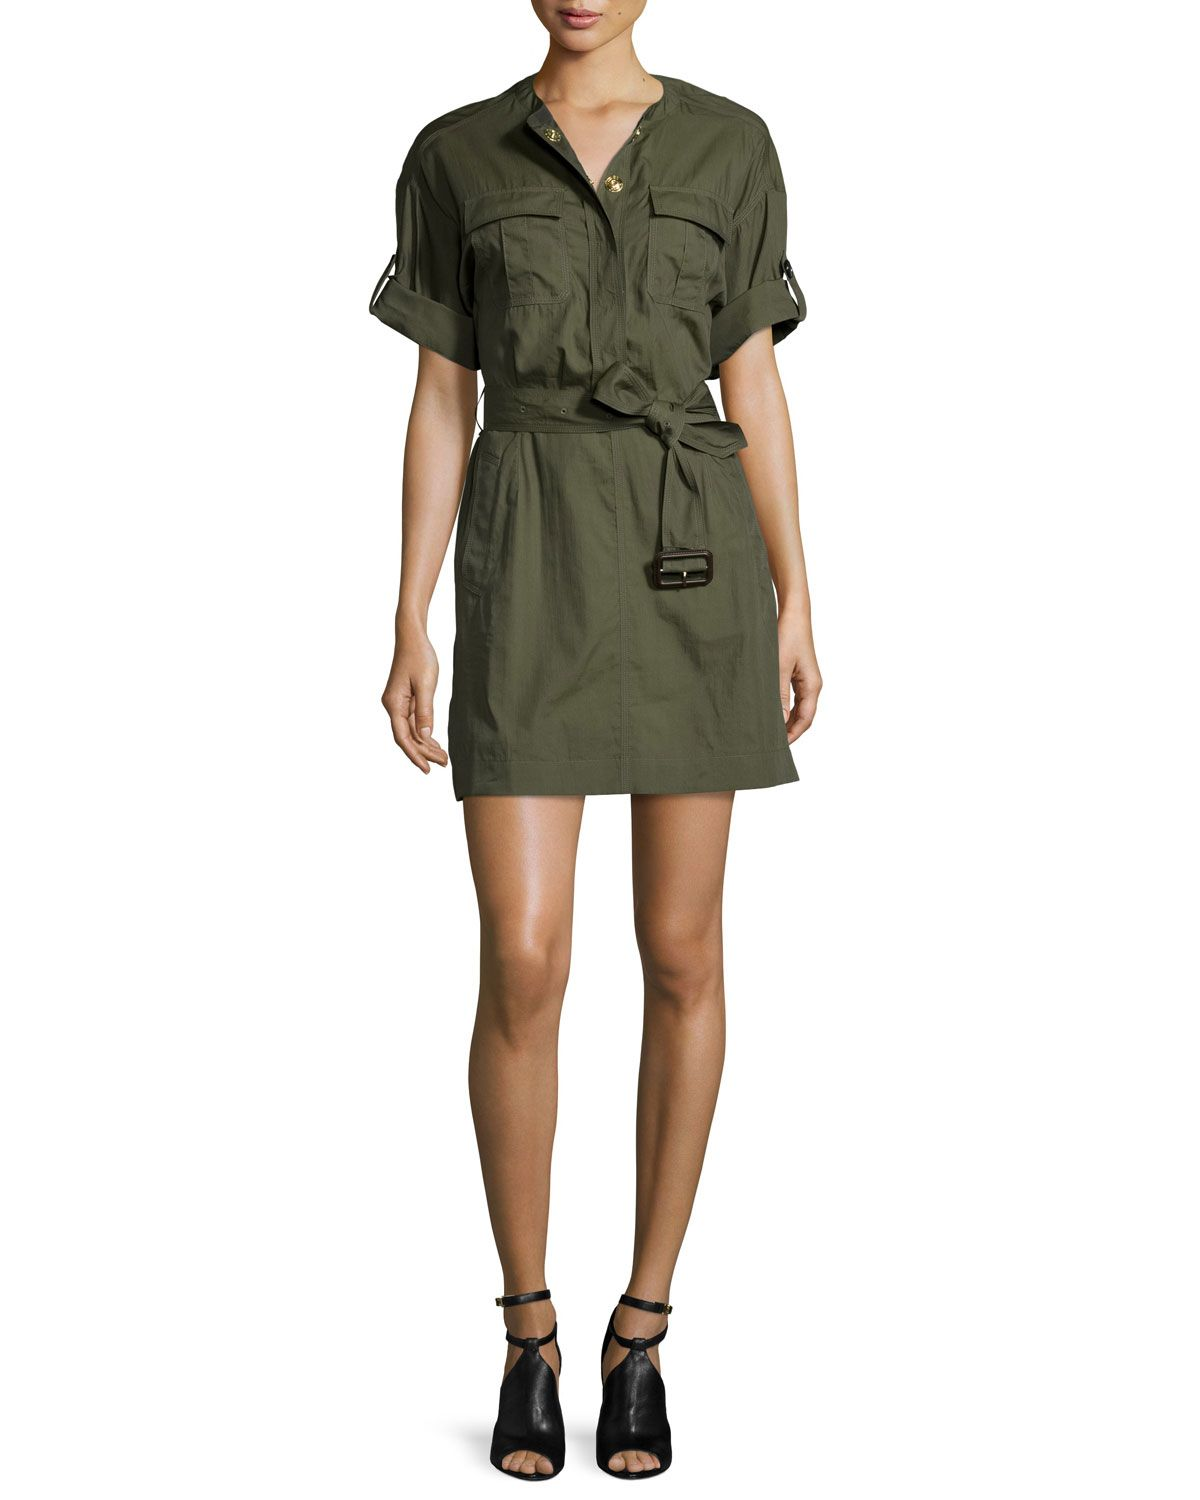 Lora Military-Inspired Dress, Size: 10, Green - Burberry Brit ...